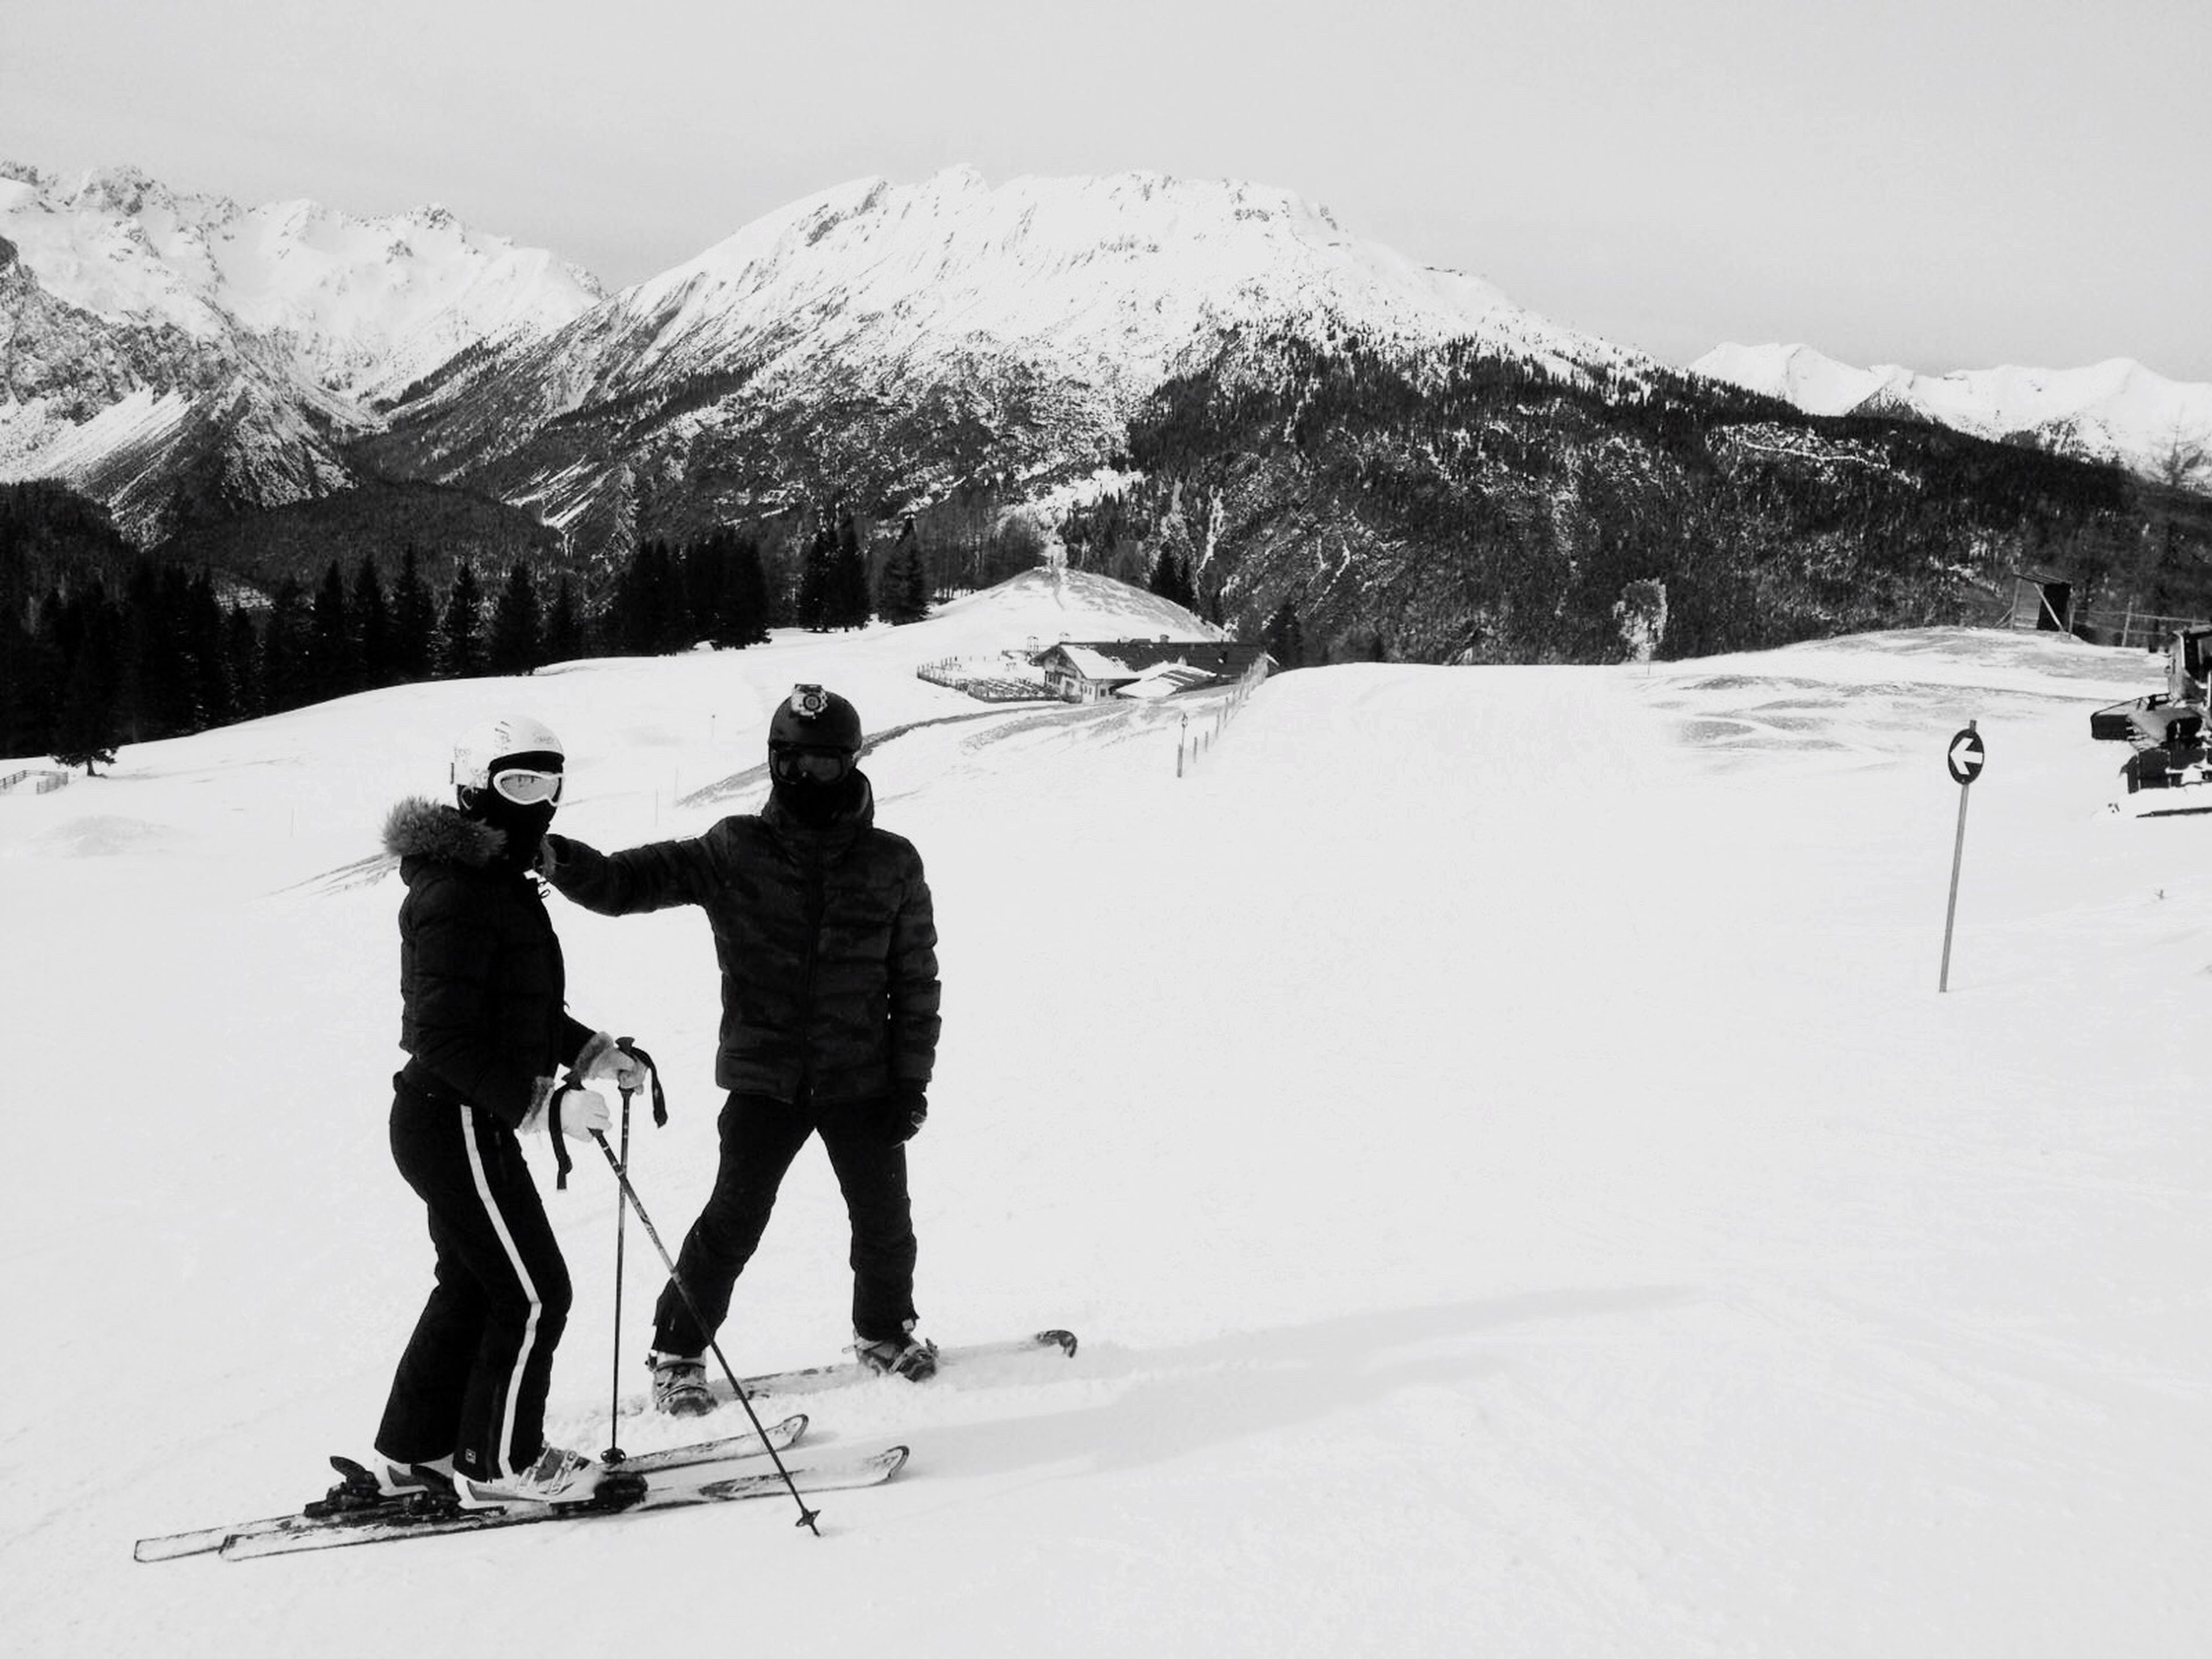 snow, winter, cold temperature, mountain, season, leisure activity, lifestyles, weather, full length, warm clothing, men, landscape, mountain range, snowcapped mountain, skiing, adventure, nature, rear view, hiking